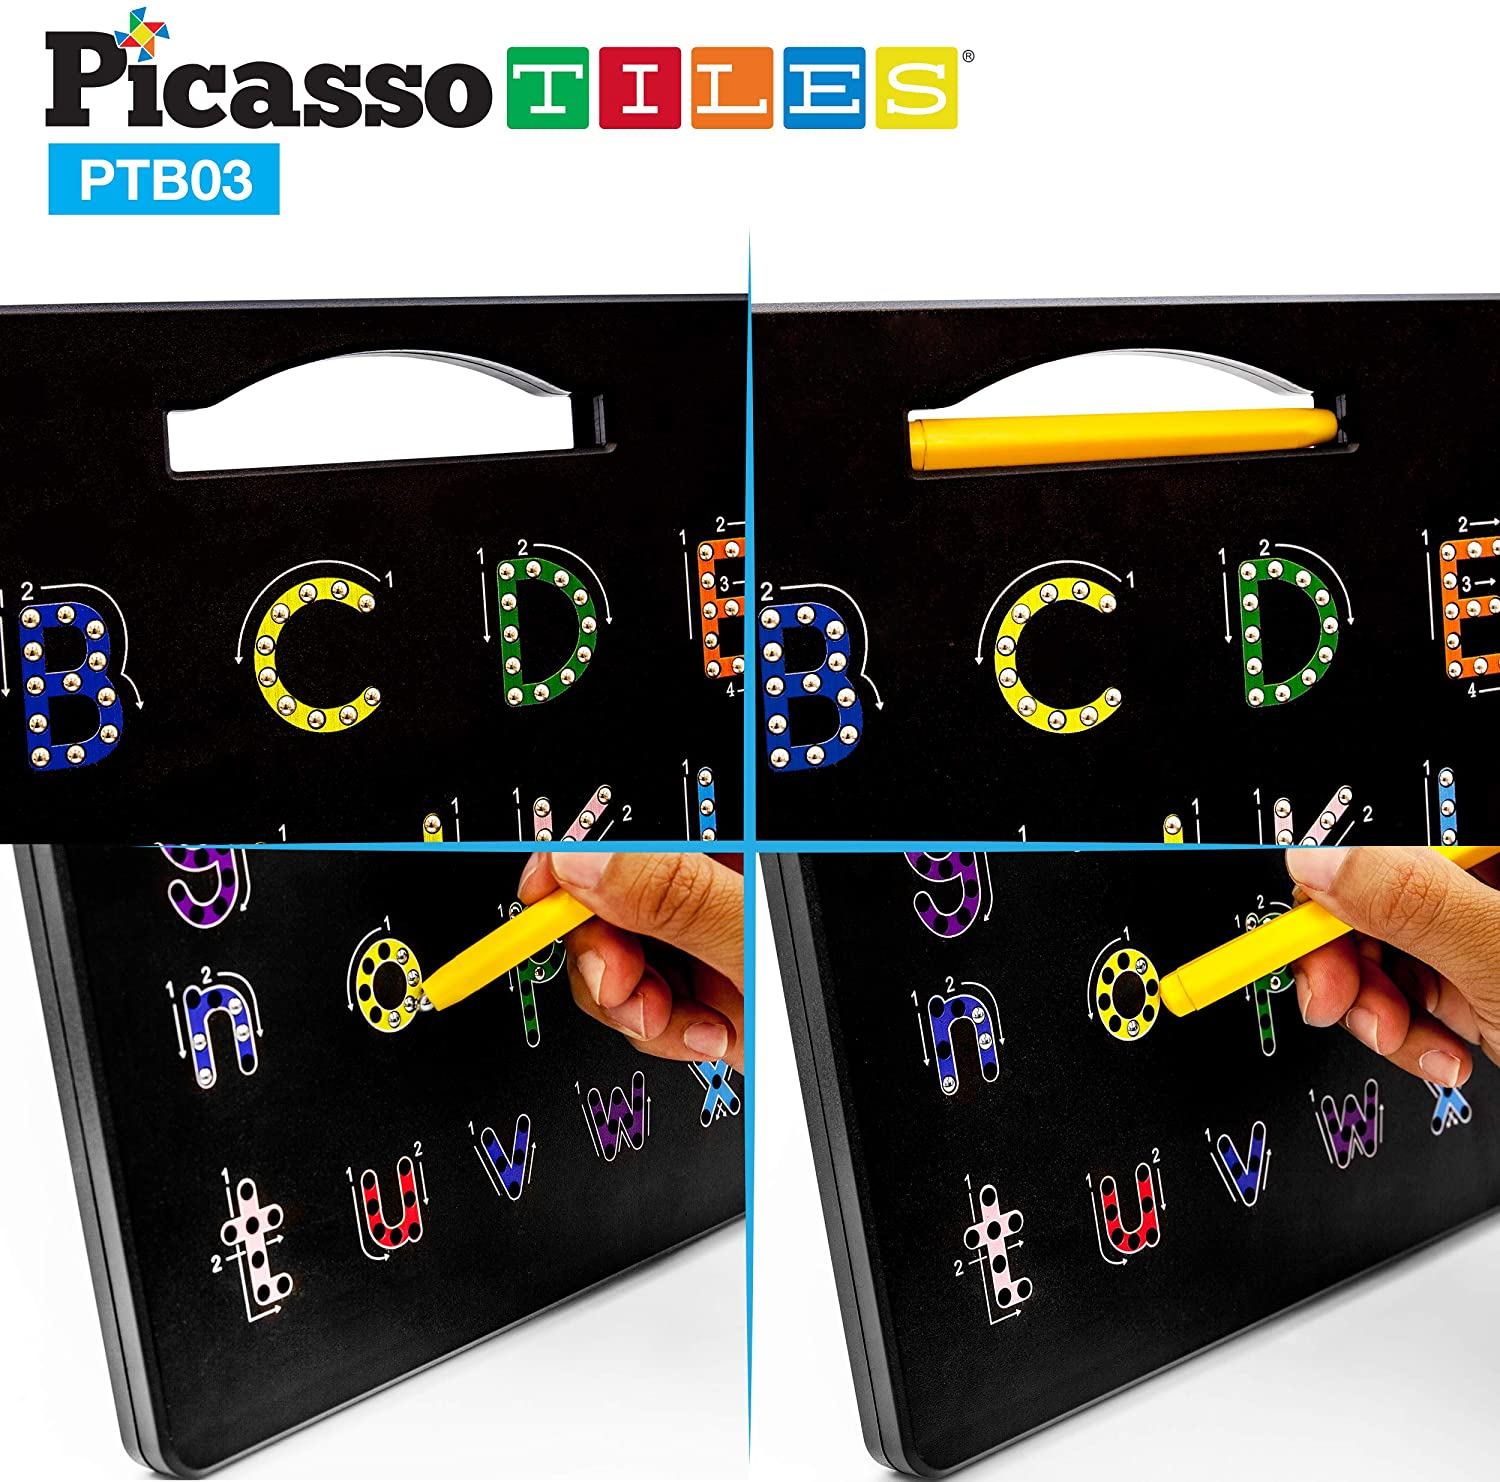 PicassoTiles 2-in-1 Double Sided Magnetic Alphabet Board 🧲 點連點磁珠畫板, 雙面兩用, 大/細楷寫字練習